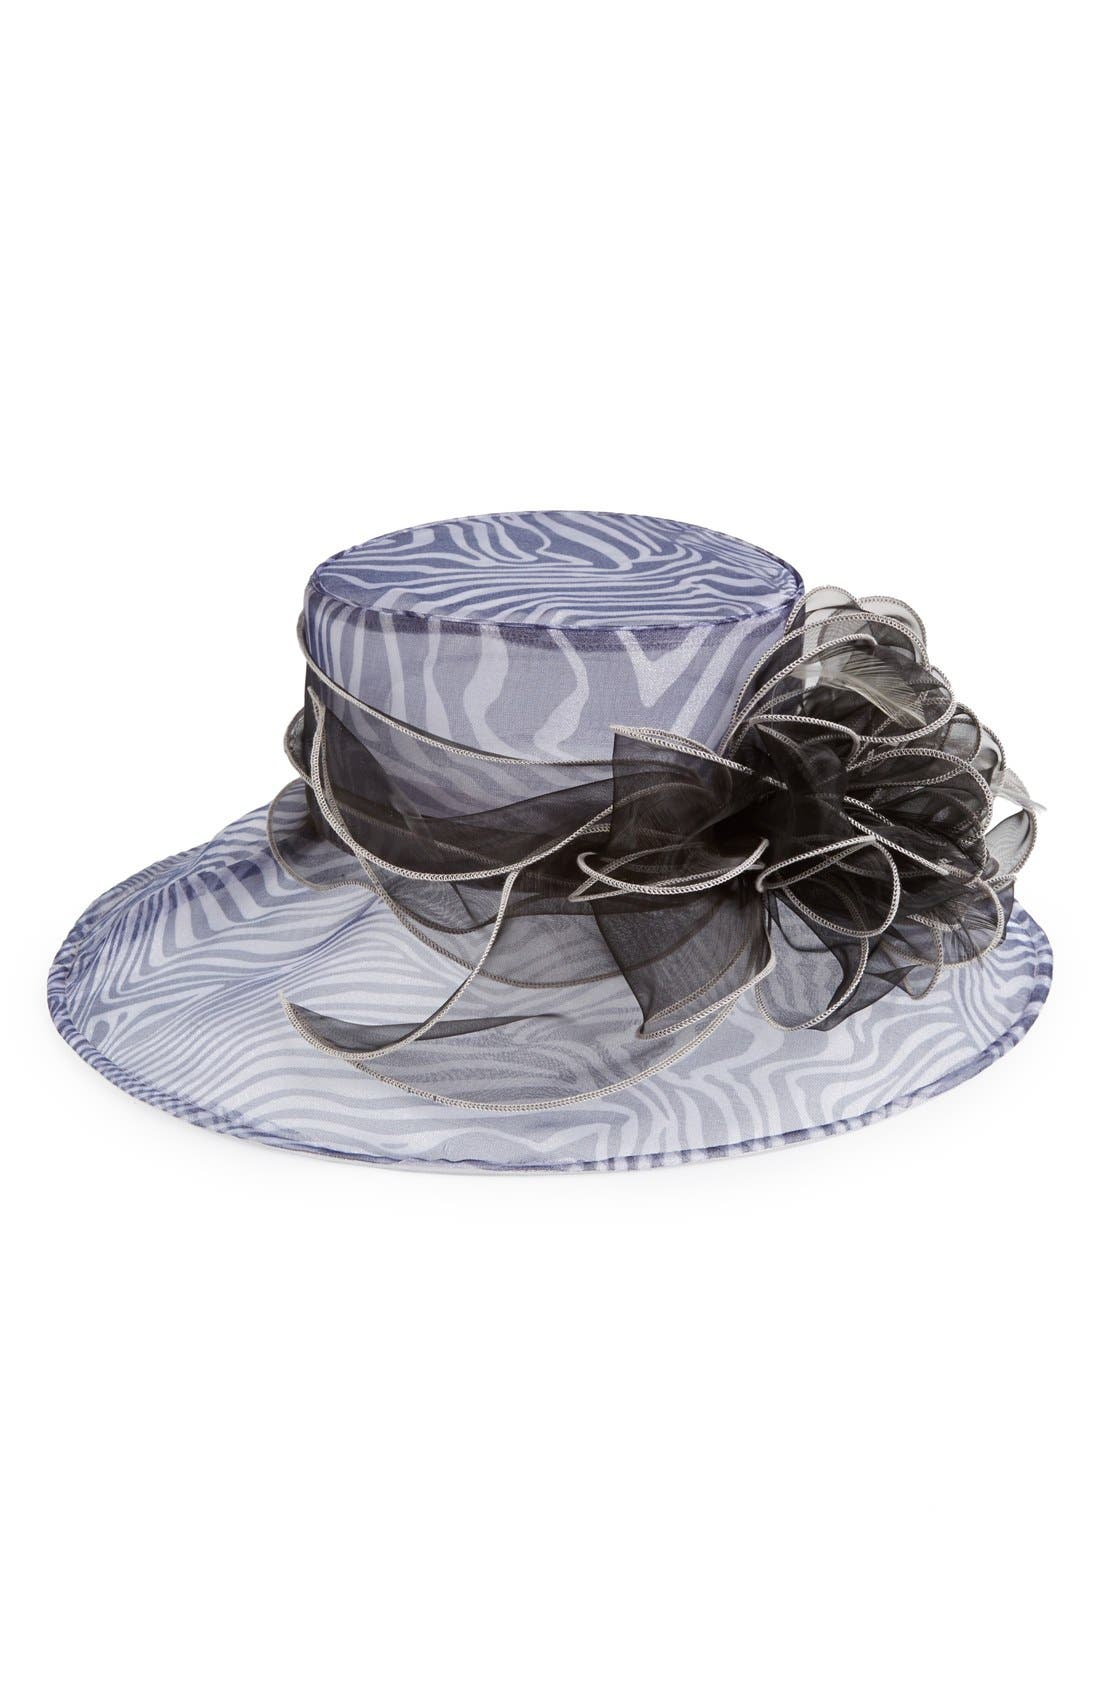 Main Image - August Hat 'Olympia' Organza Hat